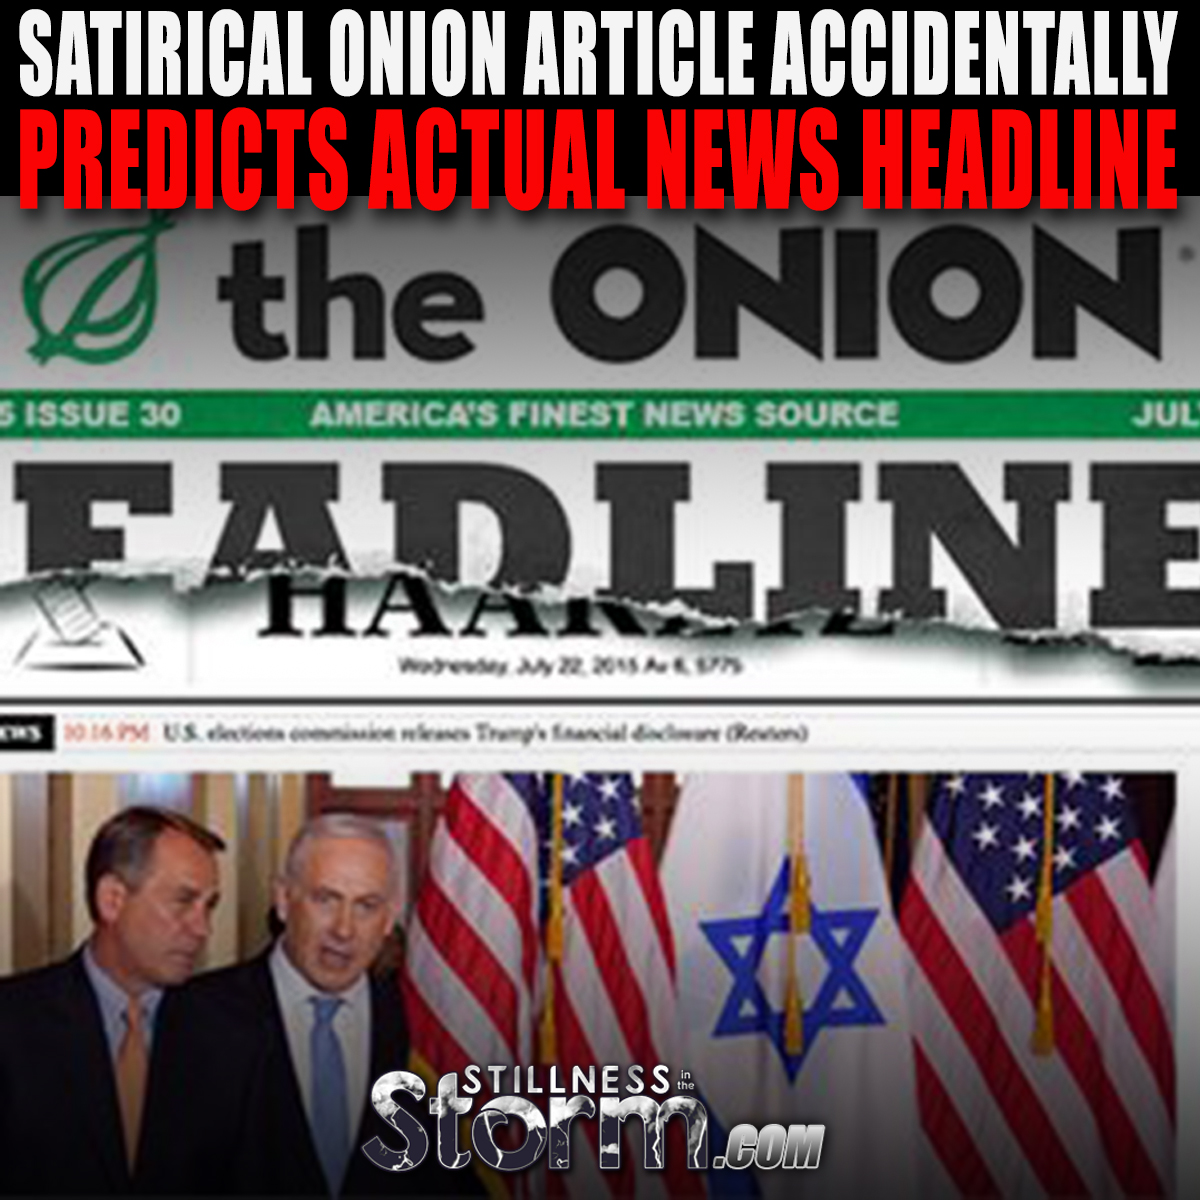 satirical essay the onion Satire essay from the onion essays: over 180,000 satire essay from the onion essays, satire essay from the onion term papers, satire essay from the onion research.